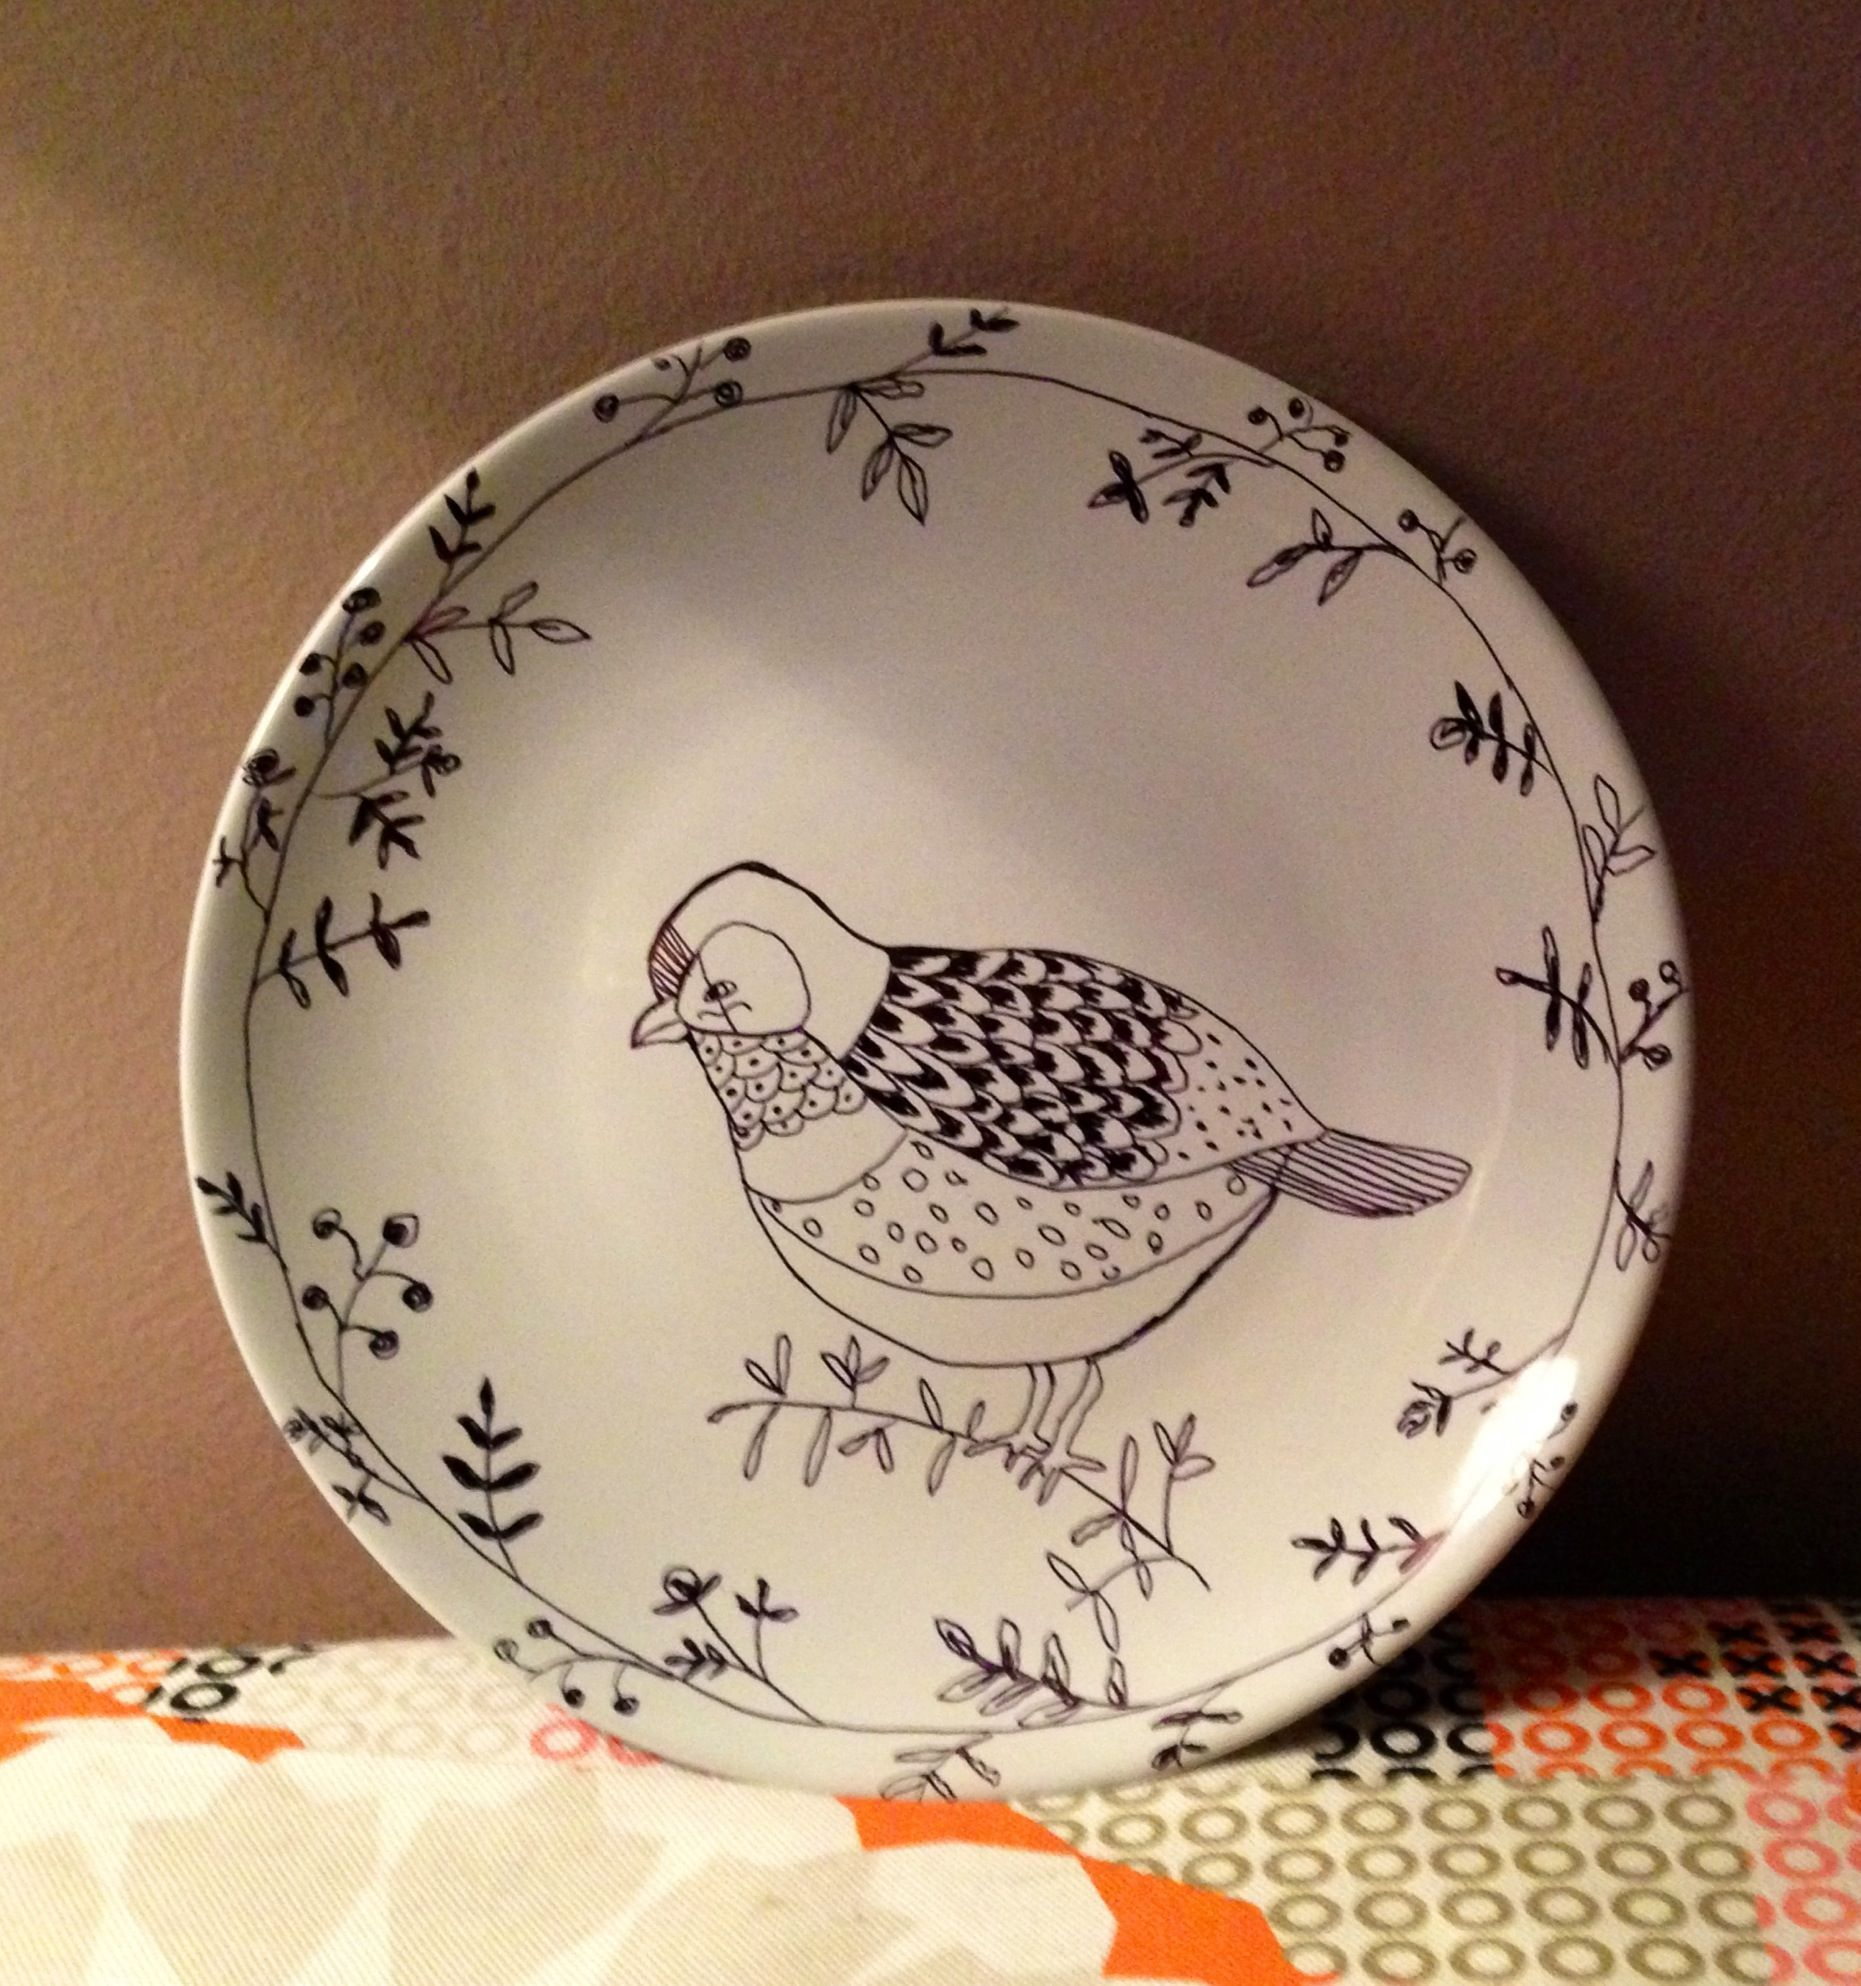 Illustrated bird sharpie plate #sharpieplates Illustrated bird sharpie plate #sharpieplates Illustrated bird sharpie plate #sharpieplates Illustrated bird sharpie plate #sharpieplates Illustrated bird sharpie plate #sharpieplates Illustrated bird sharpie plate #sharpieplates Illustrated bird sharpie plate #sharpieplates Illustrated bird sharpie plate #sharpieplates Illustrated bird sharpie plate #sharpieplates Illustrated bird sharpie plate #sharpieplates Illustrated bird sharpie plate #sharpiep #sharpieplates